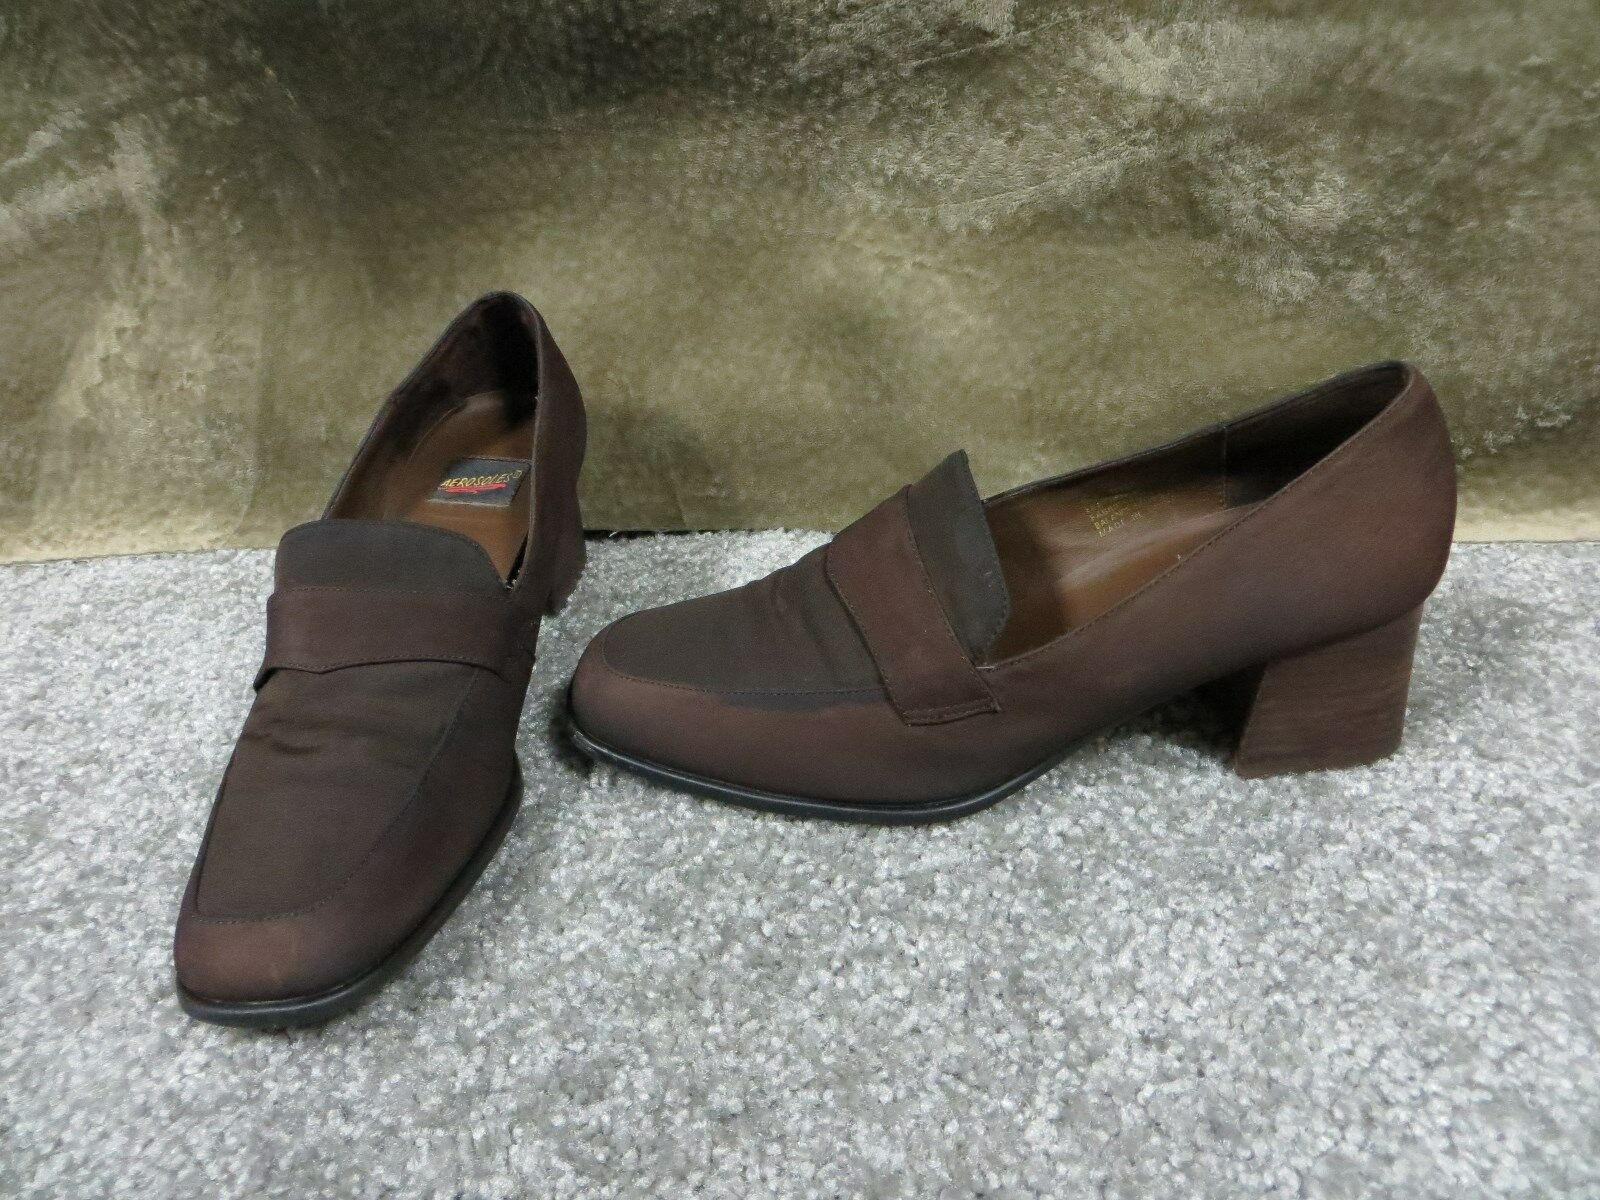 Aerosoles Dark/Med Brown Comfort Size Slip On Dress Shoes, Size Comfort 9 ef379e